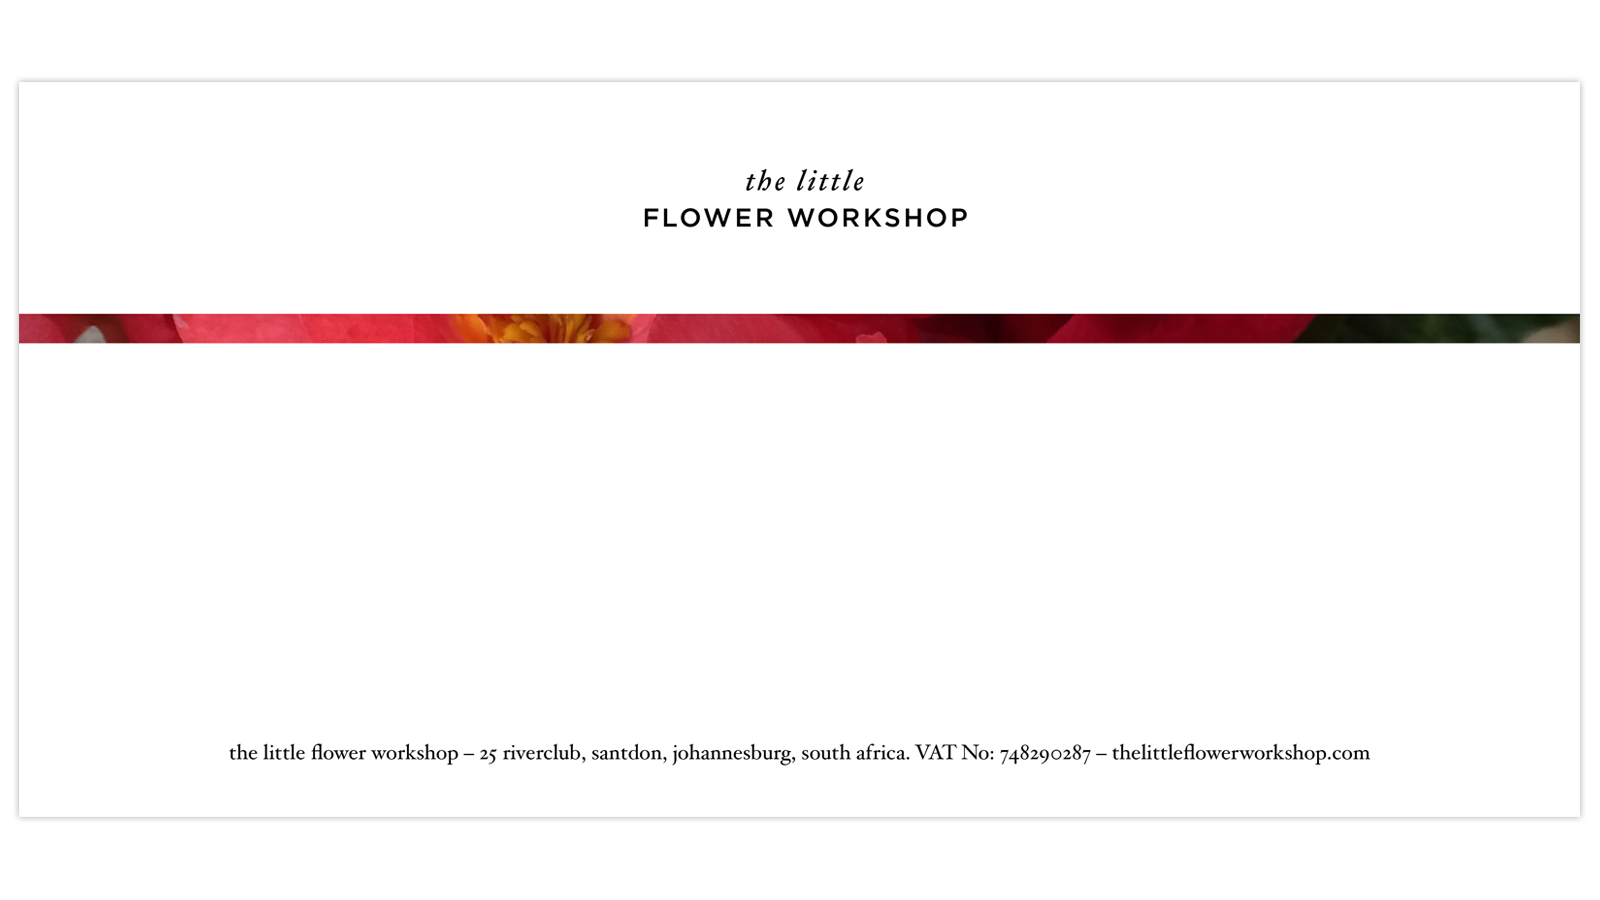 The-Little-Flower-Workshop-Compliments-Slip-Designed-By-ALSO-Agency